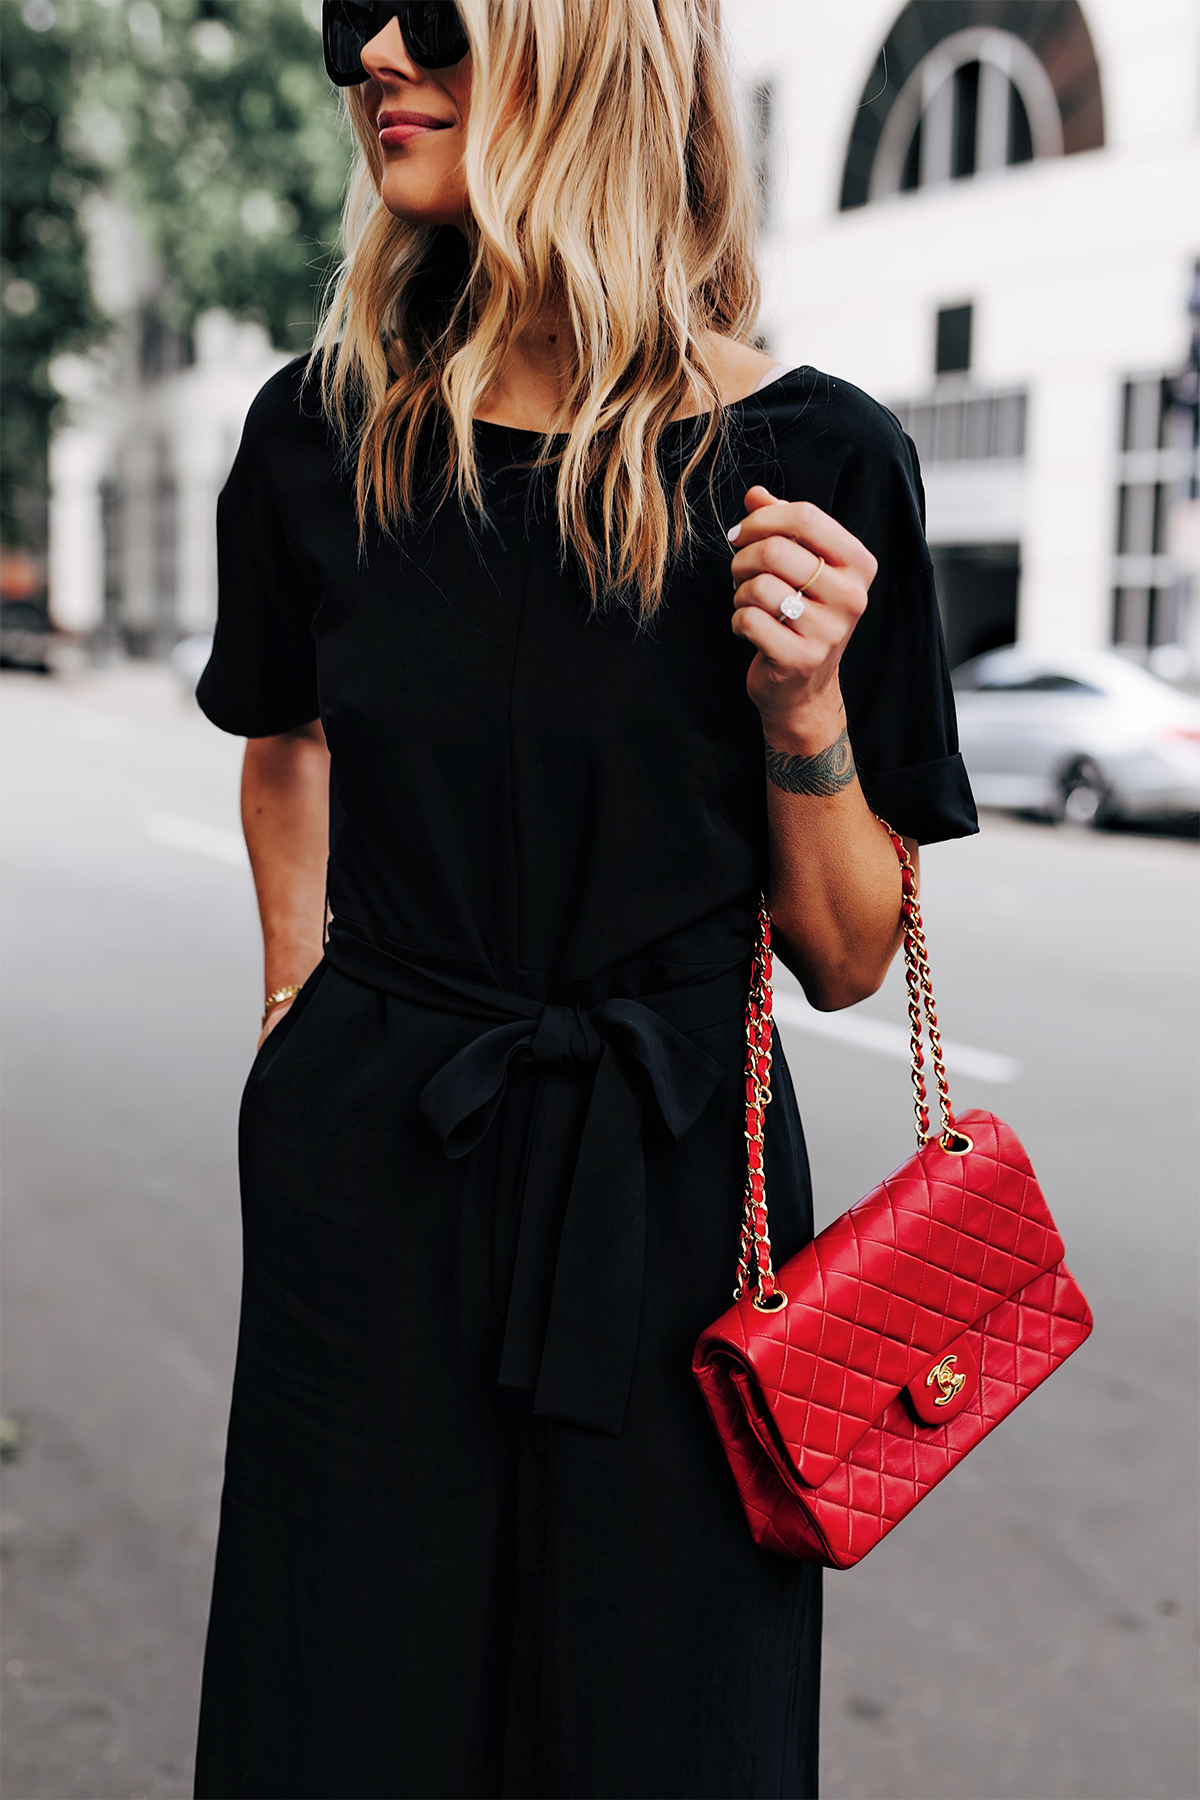 Blonde Woman Wearing Everlane Black Jumpsuit Tie Waist Chanel Classic Red Handbag Fashion Jackson San Diego Fashion Blogger Street Style